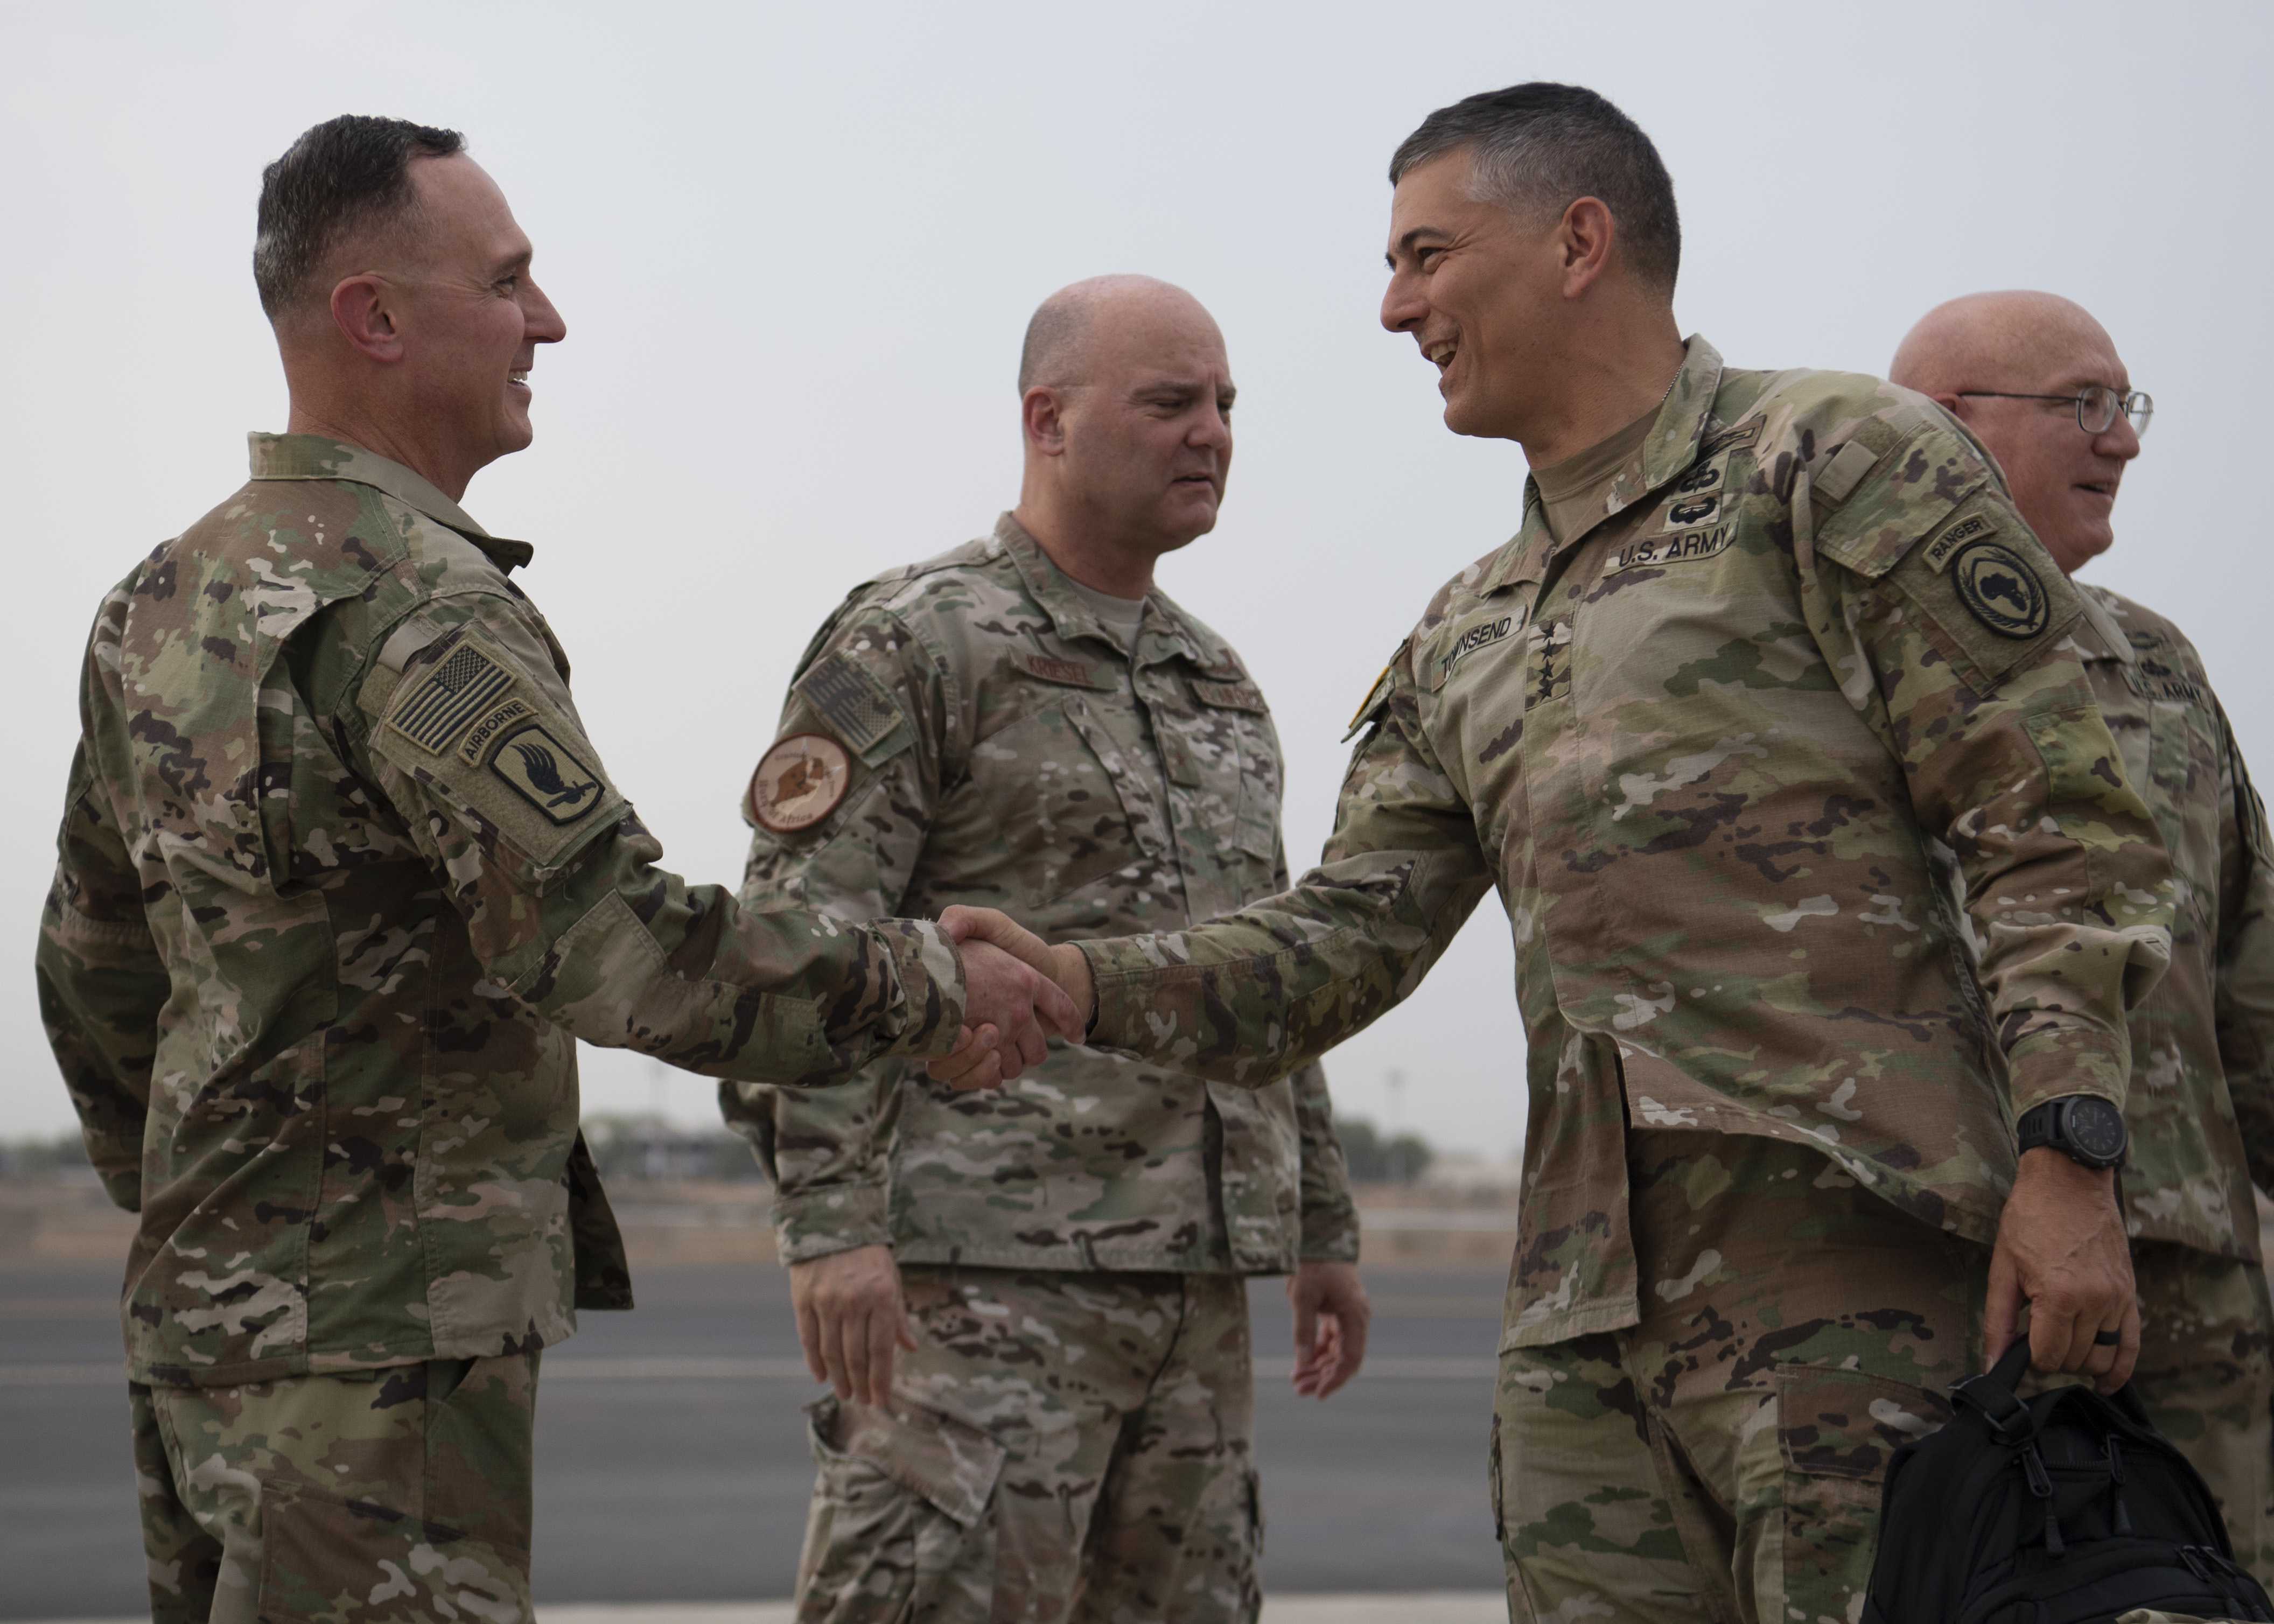 U.S. Army Gen. Stephen J. Townsend, commander, U.S. Africa Command (AFRICOM), right, is greeted by U.S. Army Command Sgt. Maj. Shawn Carns, command senior enlisted leader, Combined Joint Task Force-Horn of Africa (CJTF-HOA), at Camp Lemonnier, Djibouti, August 5, 2019.  As commander of AFRICOM Townsend is in charge of military relations with African nations, the African Union and African regional security organizations. Townsend visited Djibouti as part of his familiarization of CJTF-HOA. (U.S. Air Force photo by Staff Sgt. J.D. Strong II) (U.S. Air Force photo by Staff Sgt. J.D. Strong II)